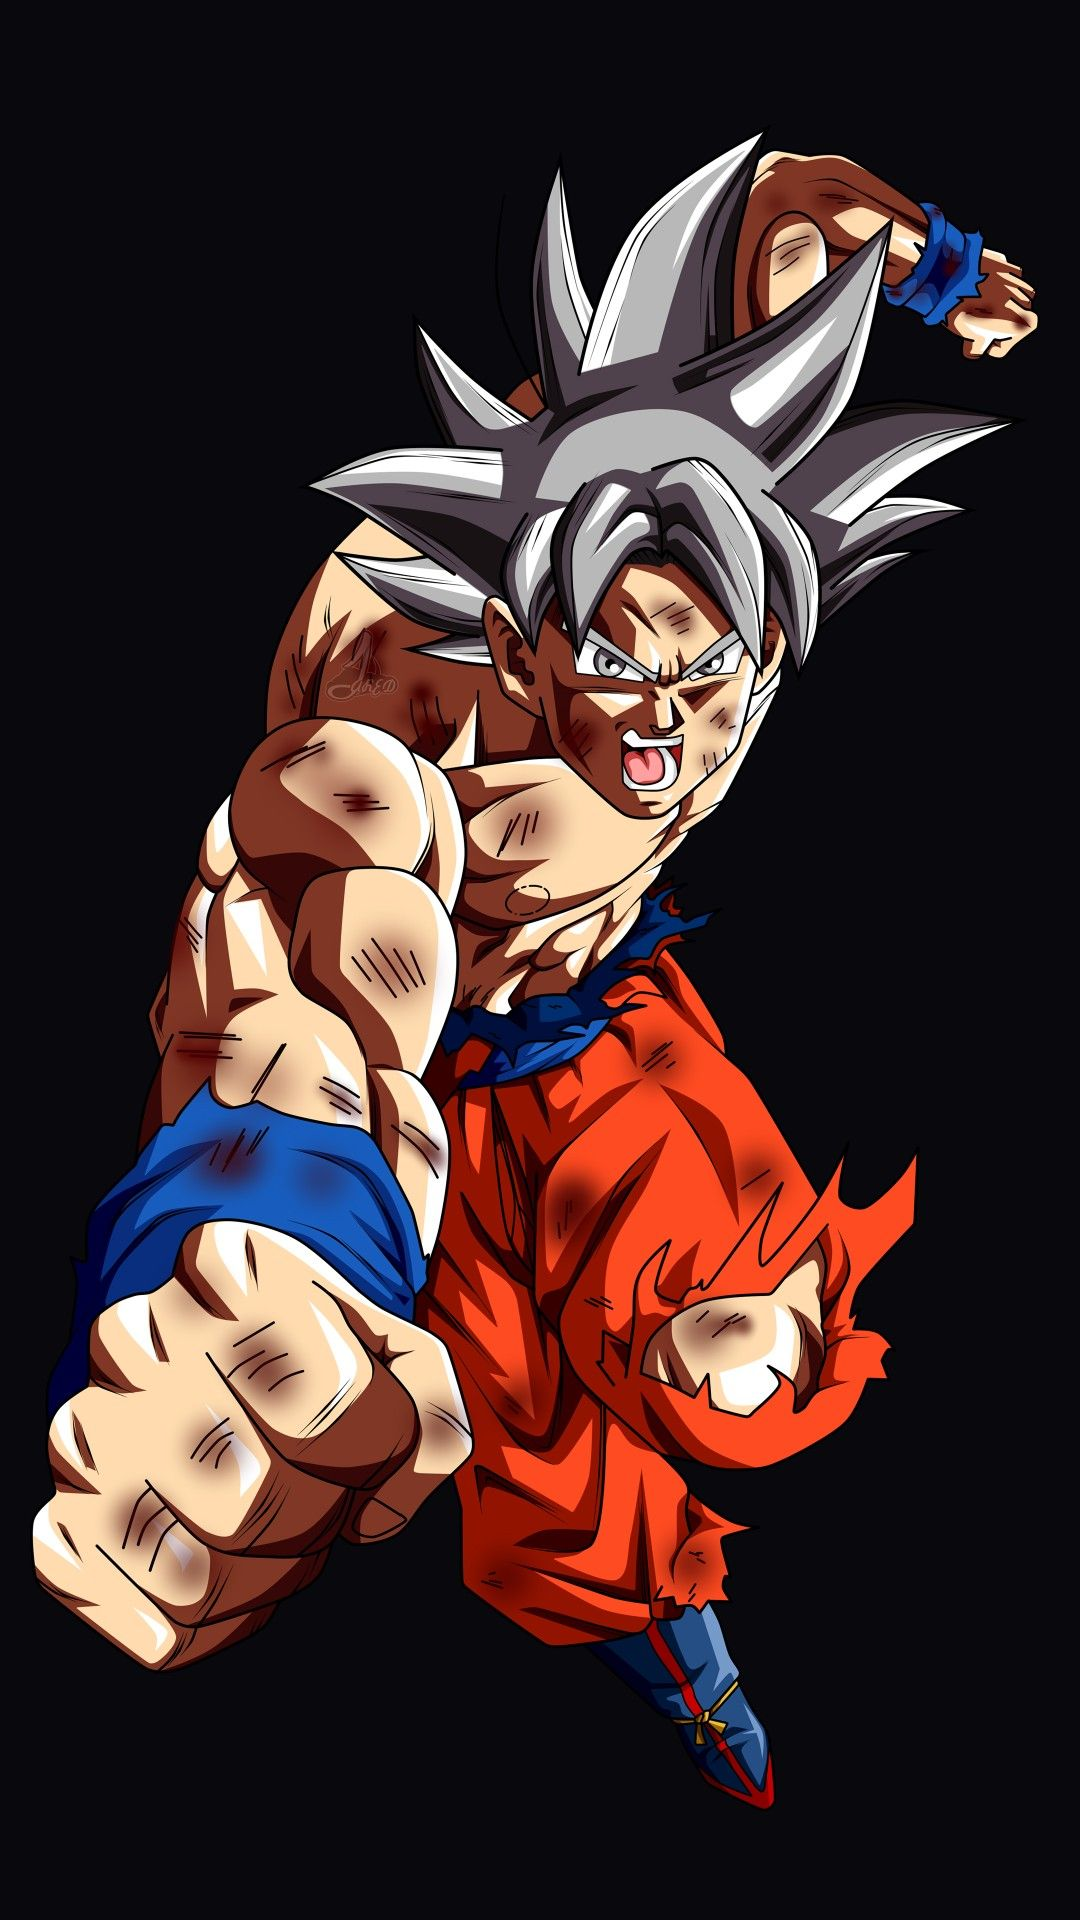 Pin by Iyan Sofyan on Super Heroes Pictures Anime dragon